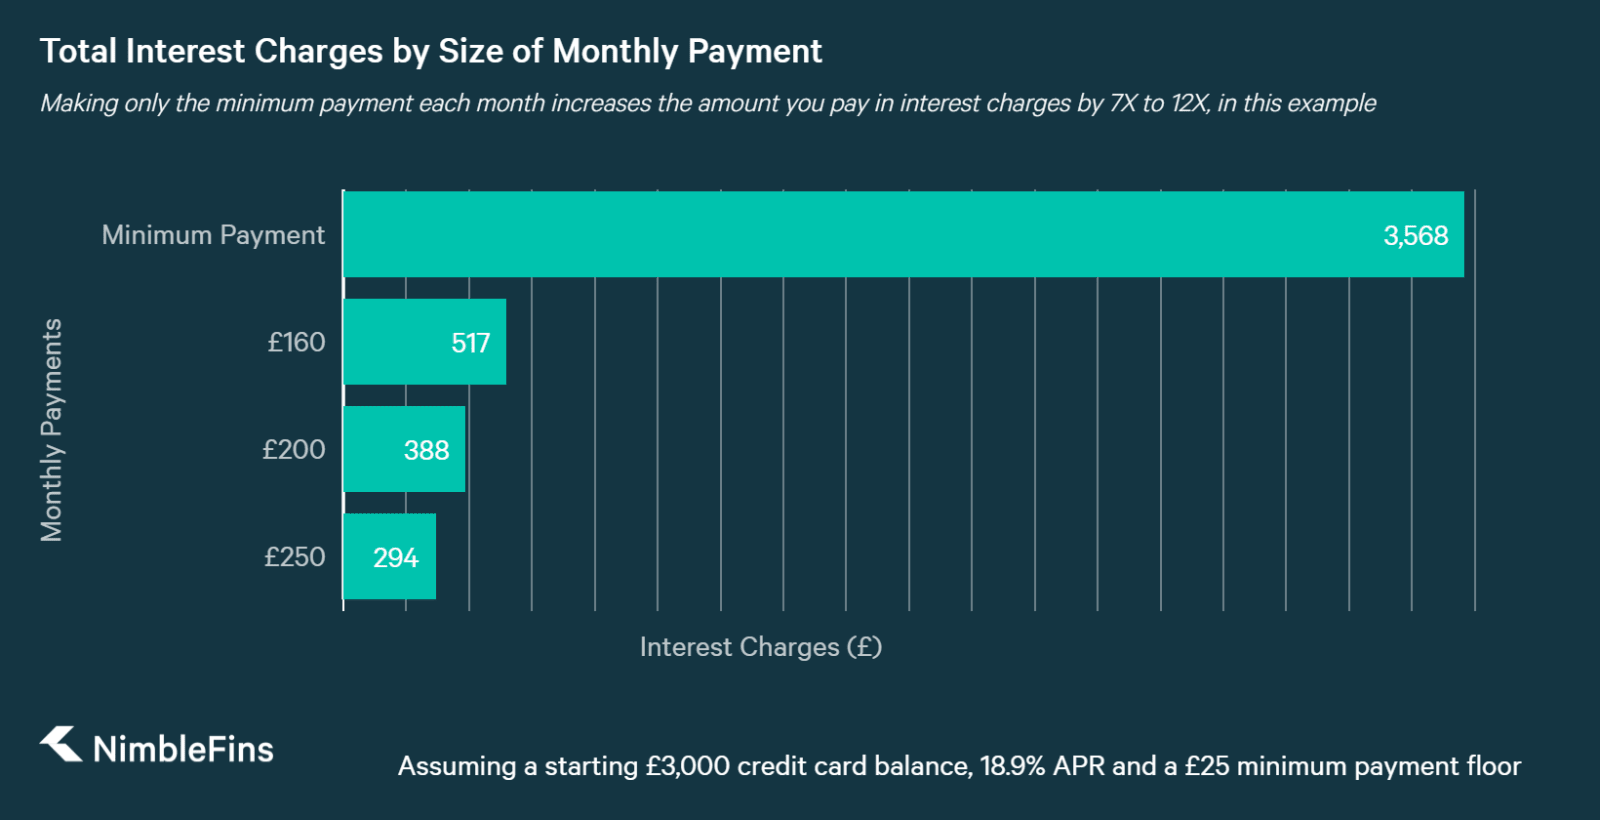 chart showing the difference in interest charges depending on the size of monthly payments